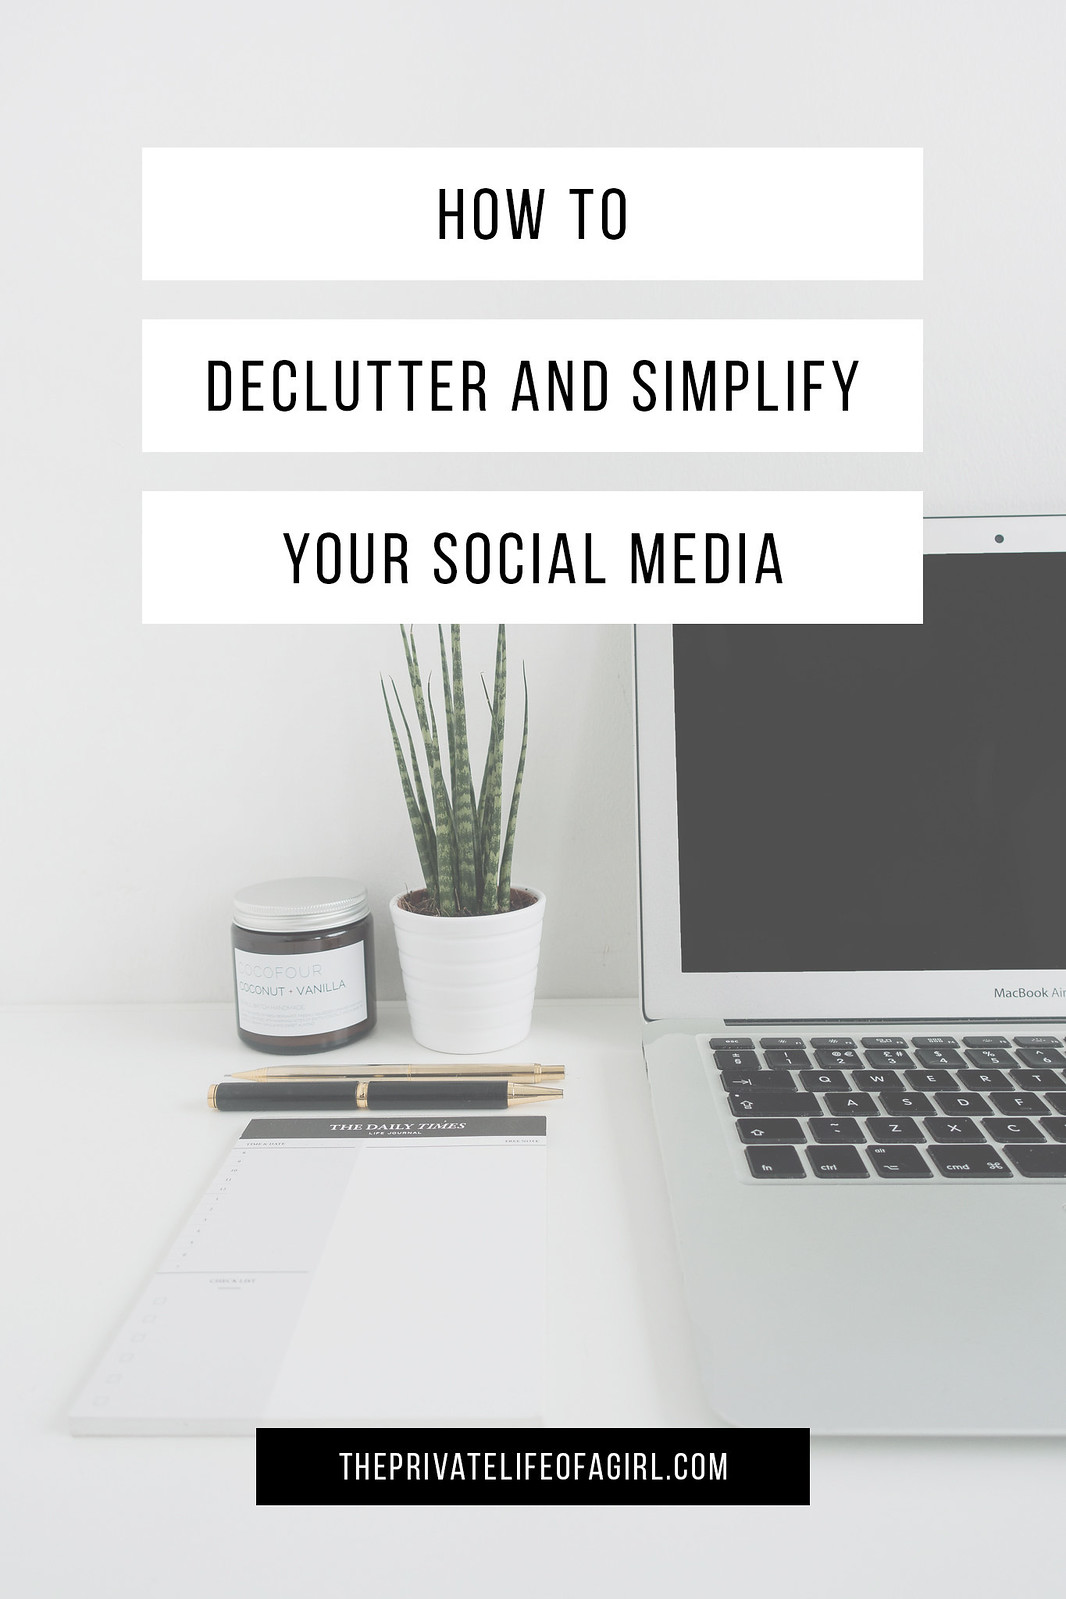 How To Declutter and Simplify Your Social Media